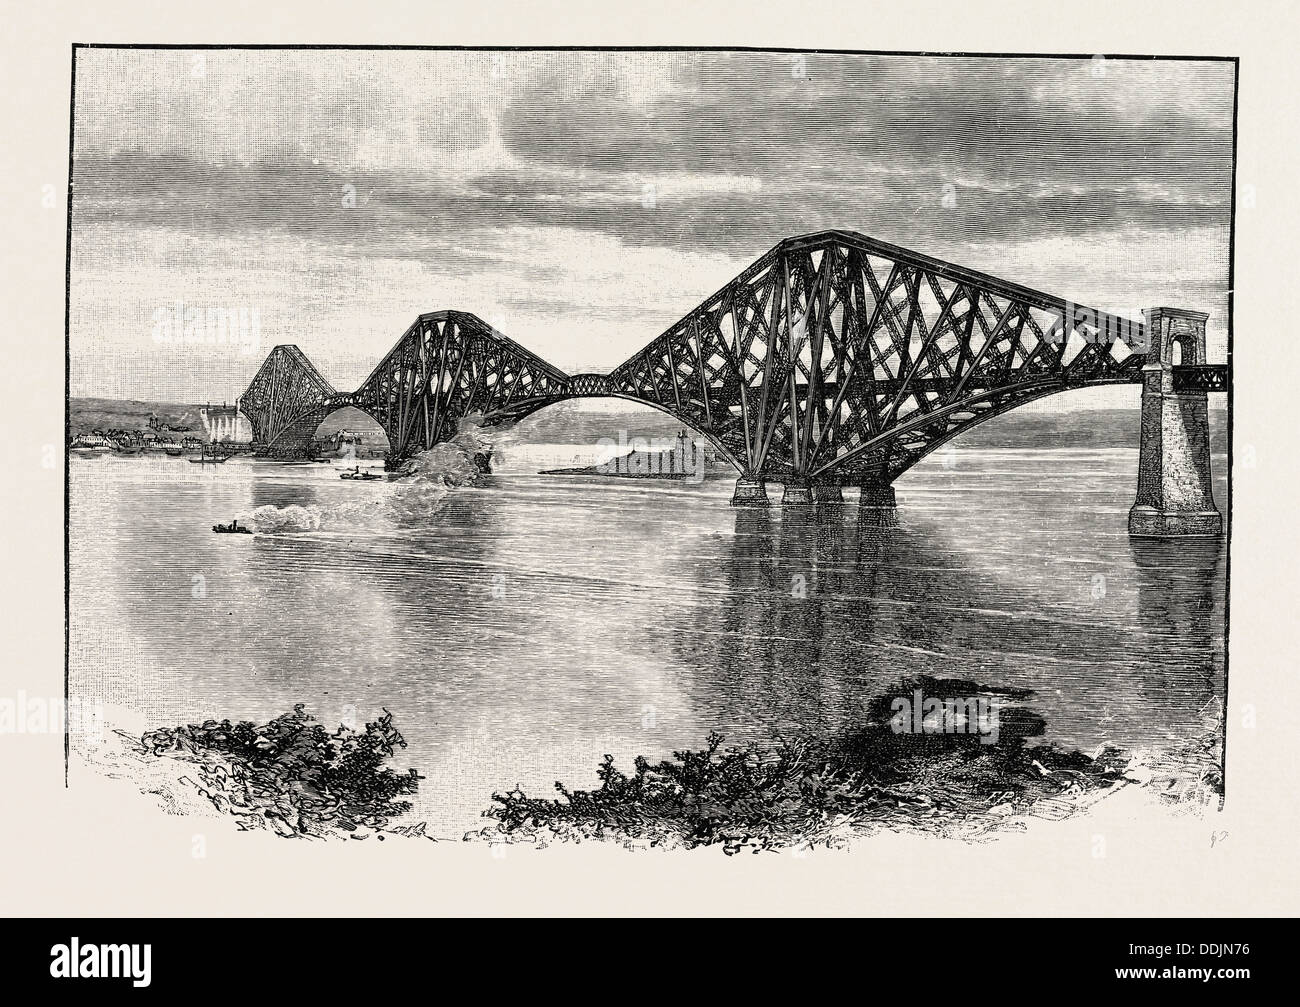 FORTH BRIDGE, FROM THE SOUTH-WEST. The Forth Bridge is a cantilever railway bridge over the Firth of Forth - Stock Image